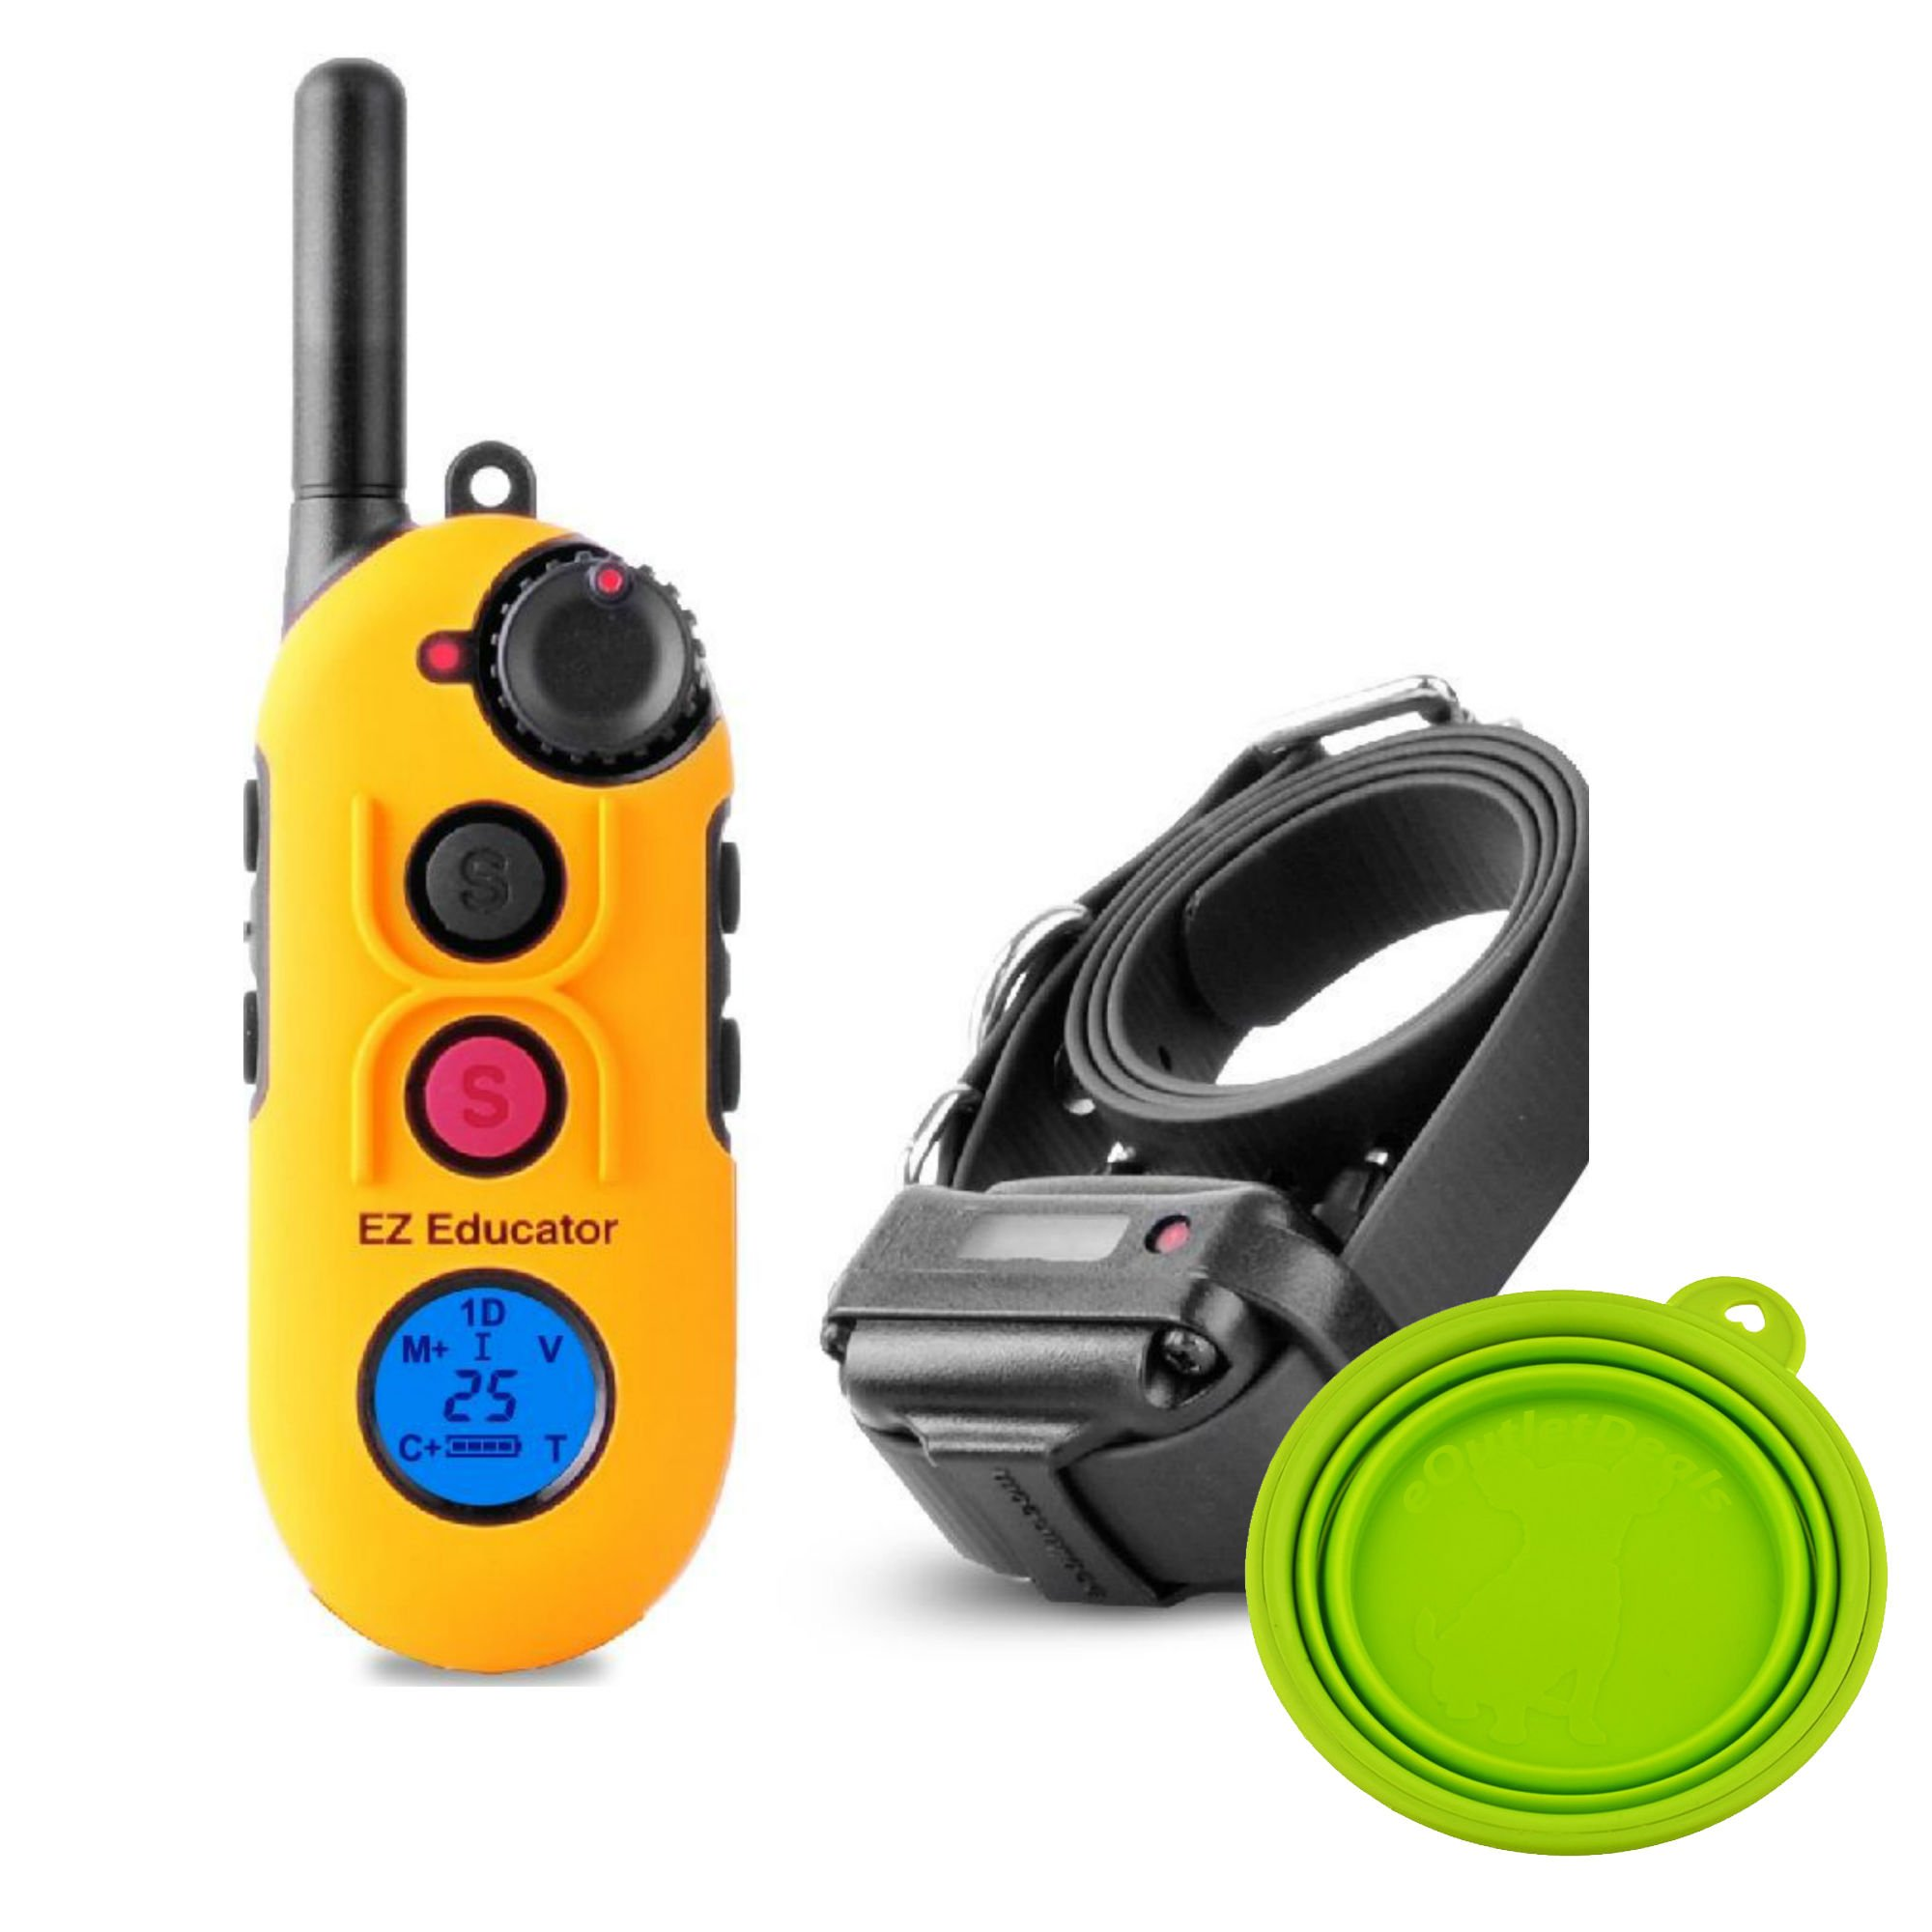 Educator Easy EZ-900 E-Collar Remote Dog Training System 1/2 Mile with Vibration, Tapping, Pavlovian Stimulation - Waterproof and Shock Resistant - with Bonus eOutletDeals Travel Bowl (1 Dog) by Easy Educator